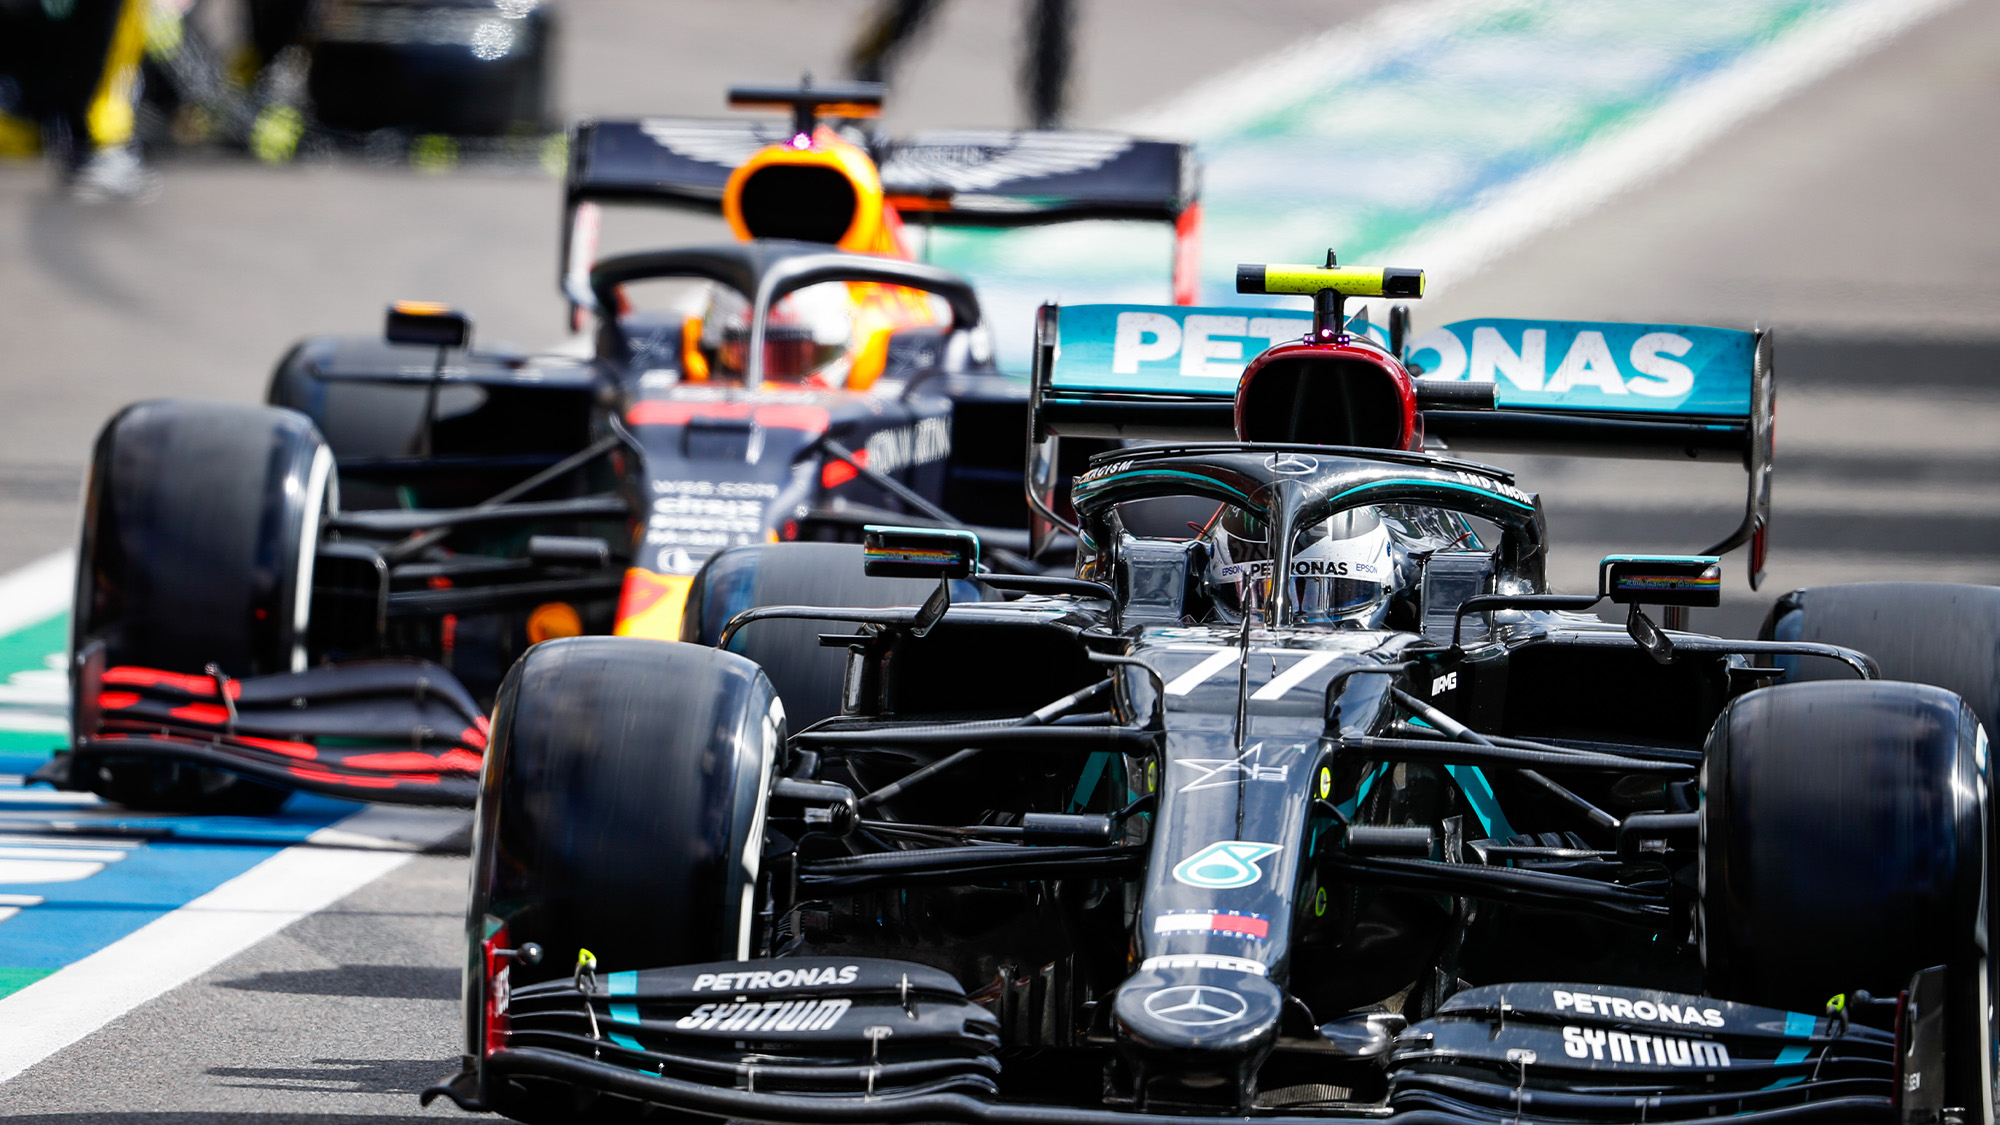 Valtteri Bottas leaves the Spa Francorchamps pits ahead of Max Verstappen during the 2020 f1 Belgian Grand prix